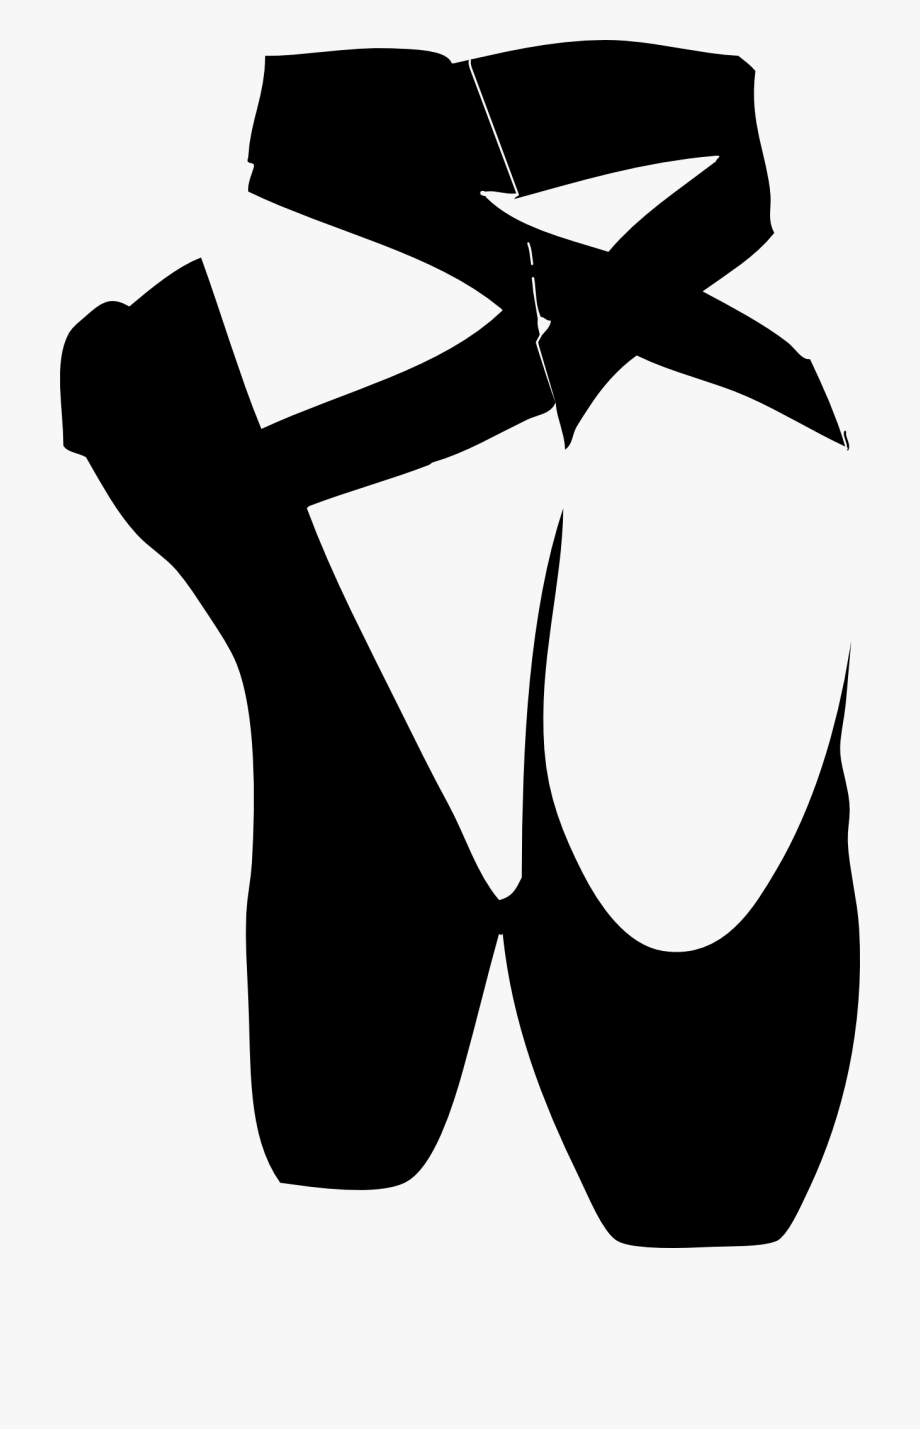 drawing of shoes image pair of shoes drawing at getdrawings free download of shoes image drawing